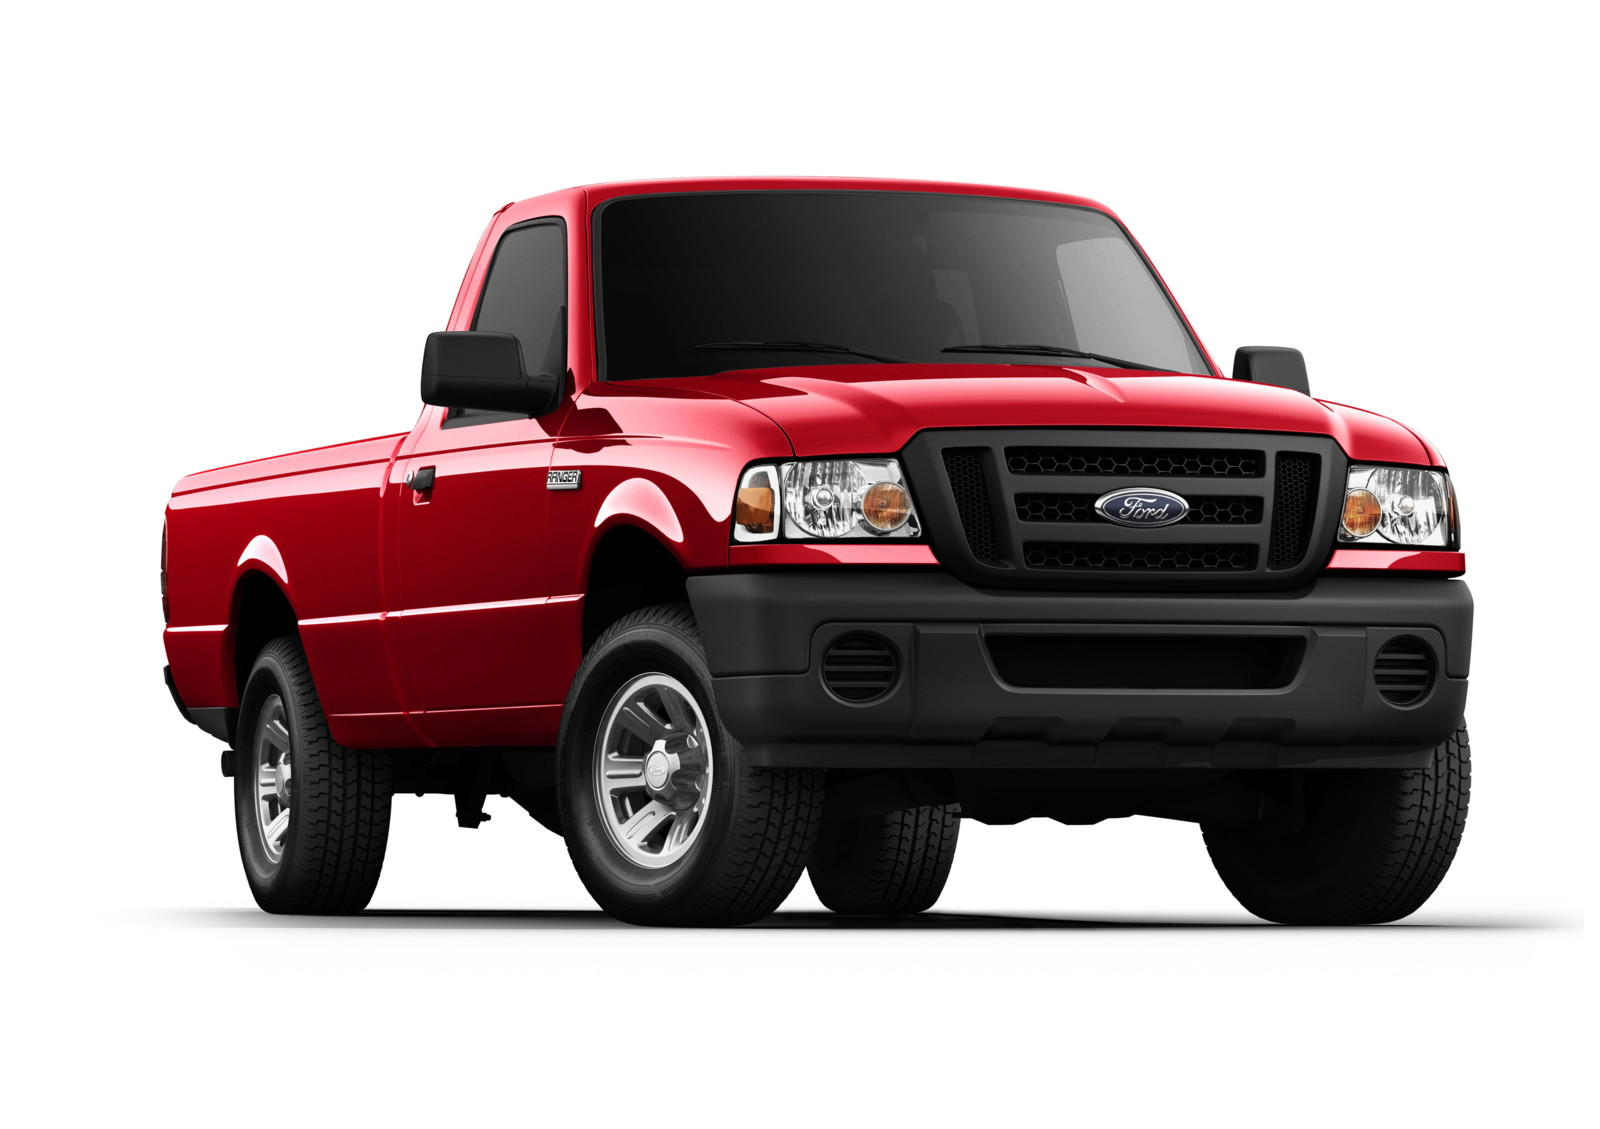 Mercedes Benz Fresno >> New and Used Ford Ranger: Prices, Photos, Reviews, Specs ...